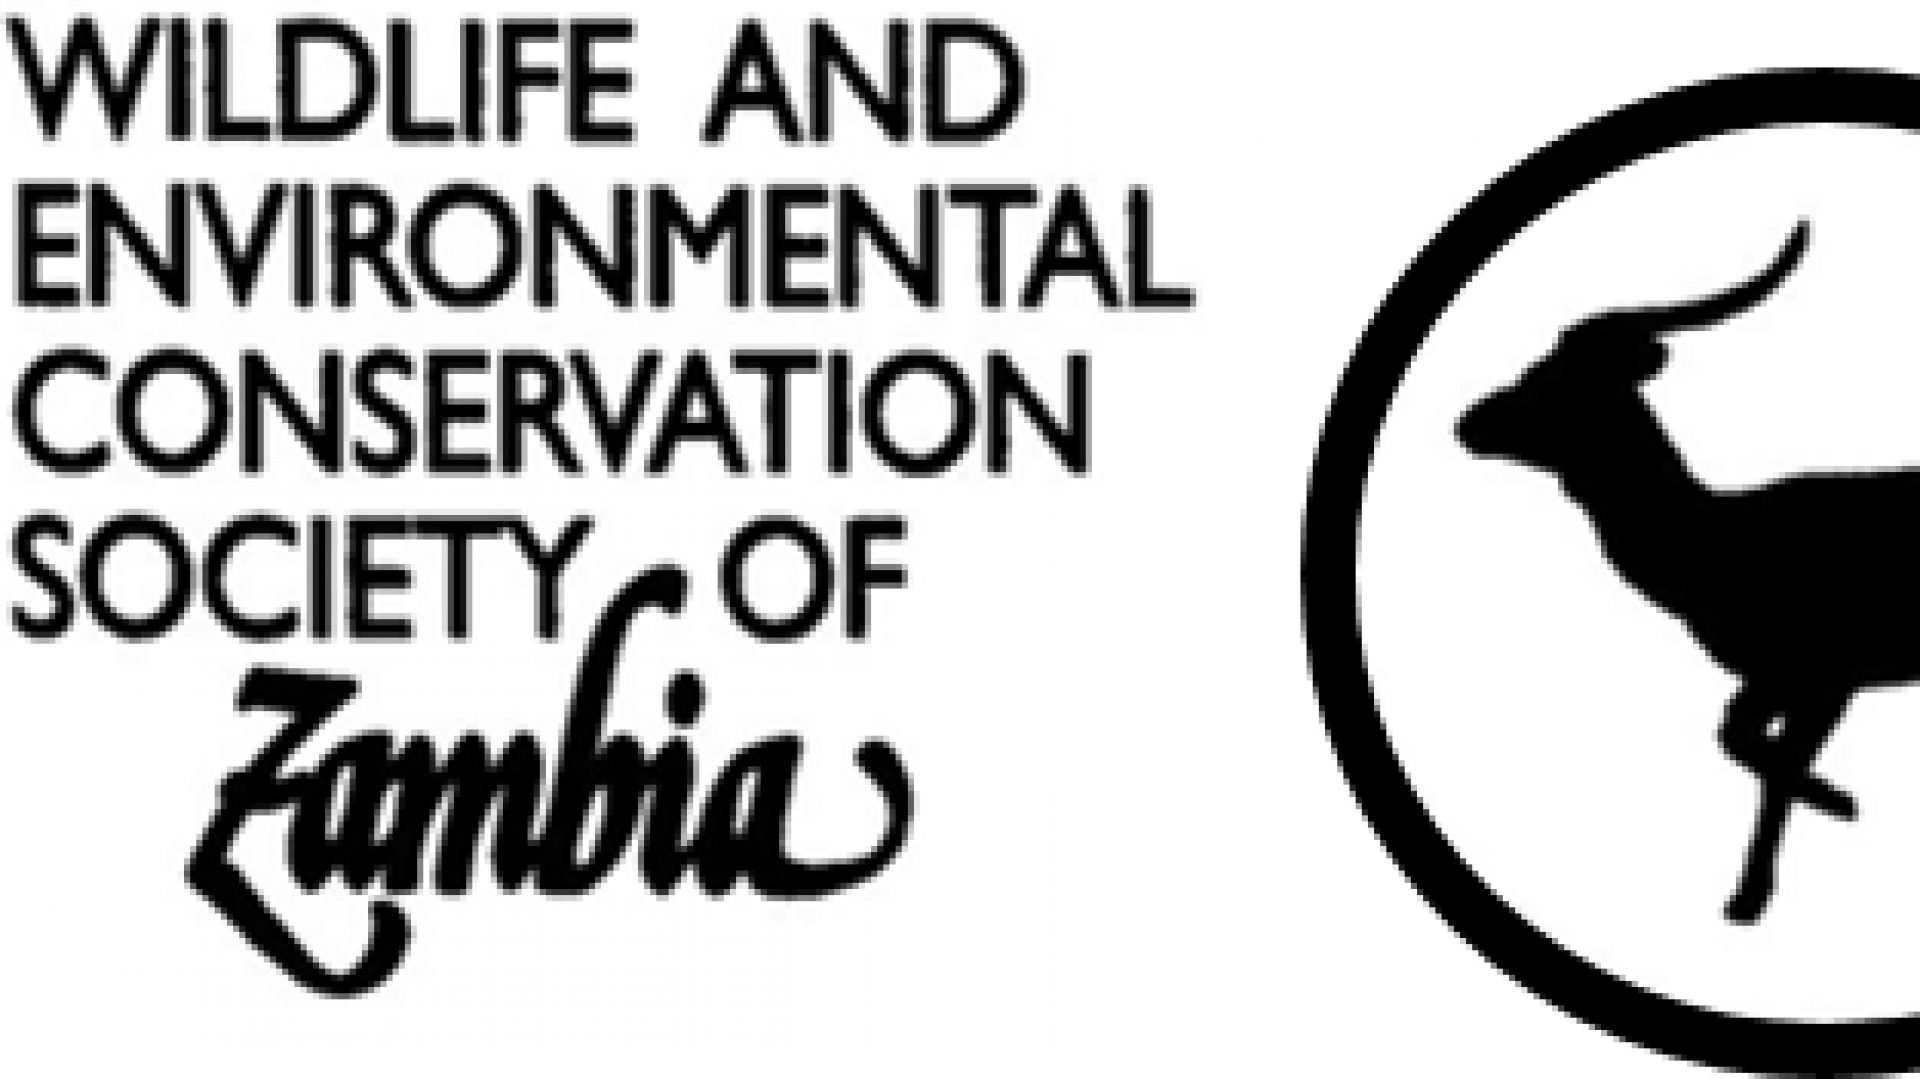 Wildlife and Environmental Conservation Society Of Zambia (WECSZ)